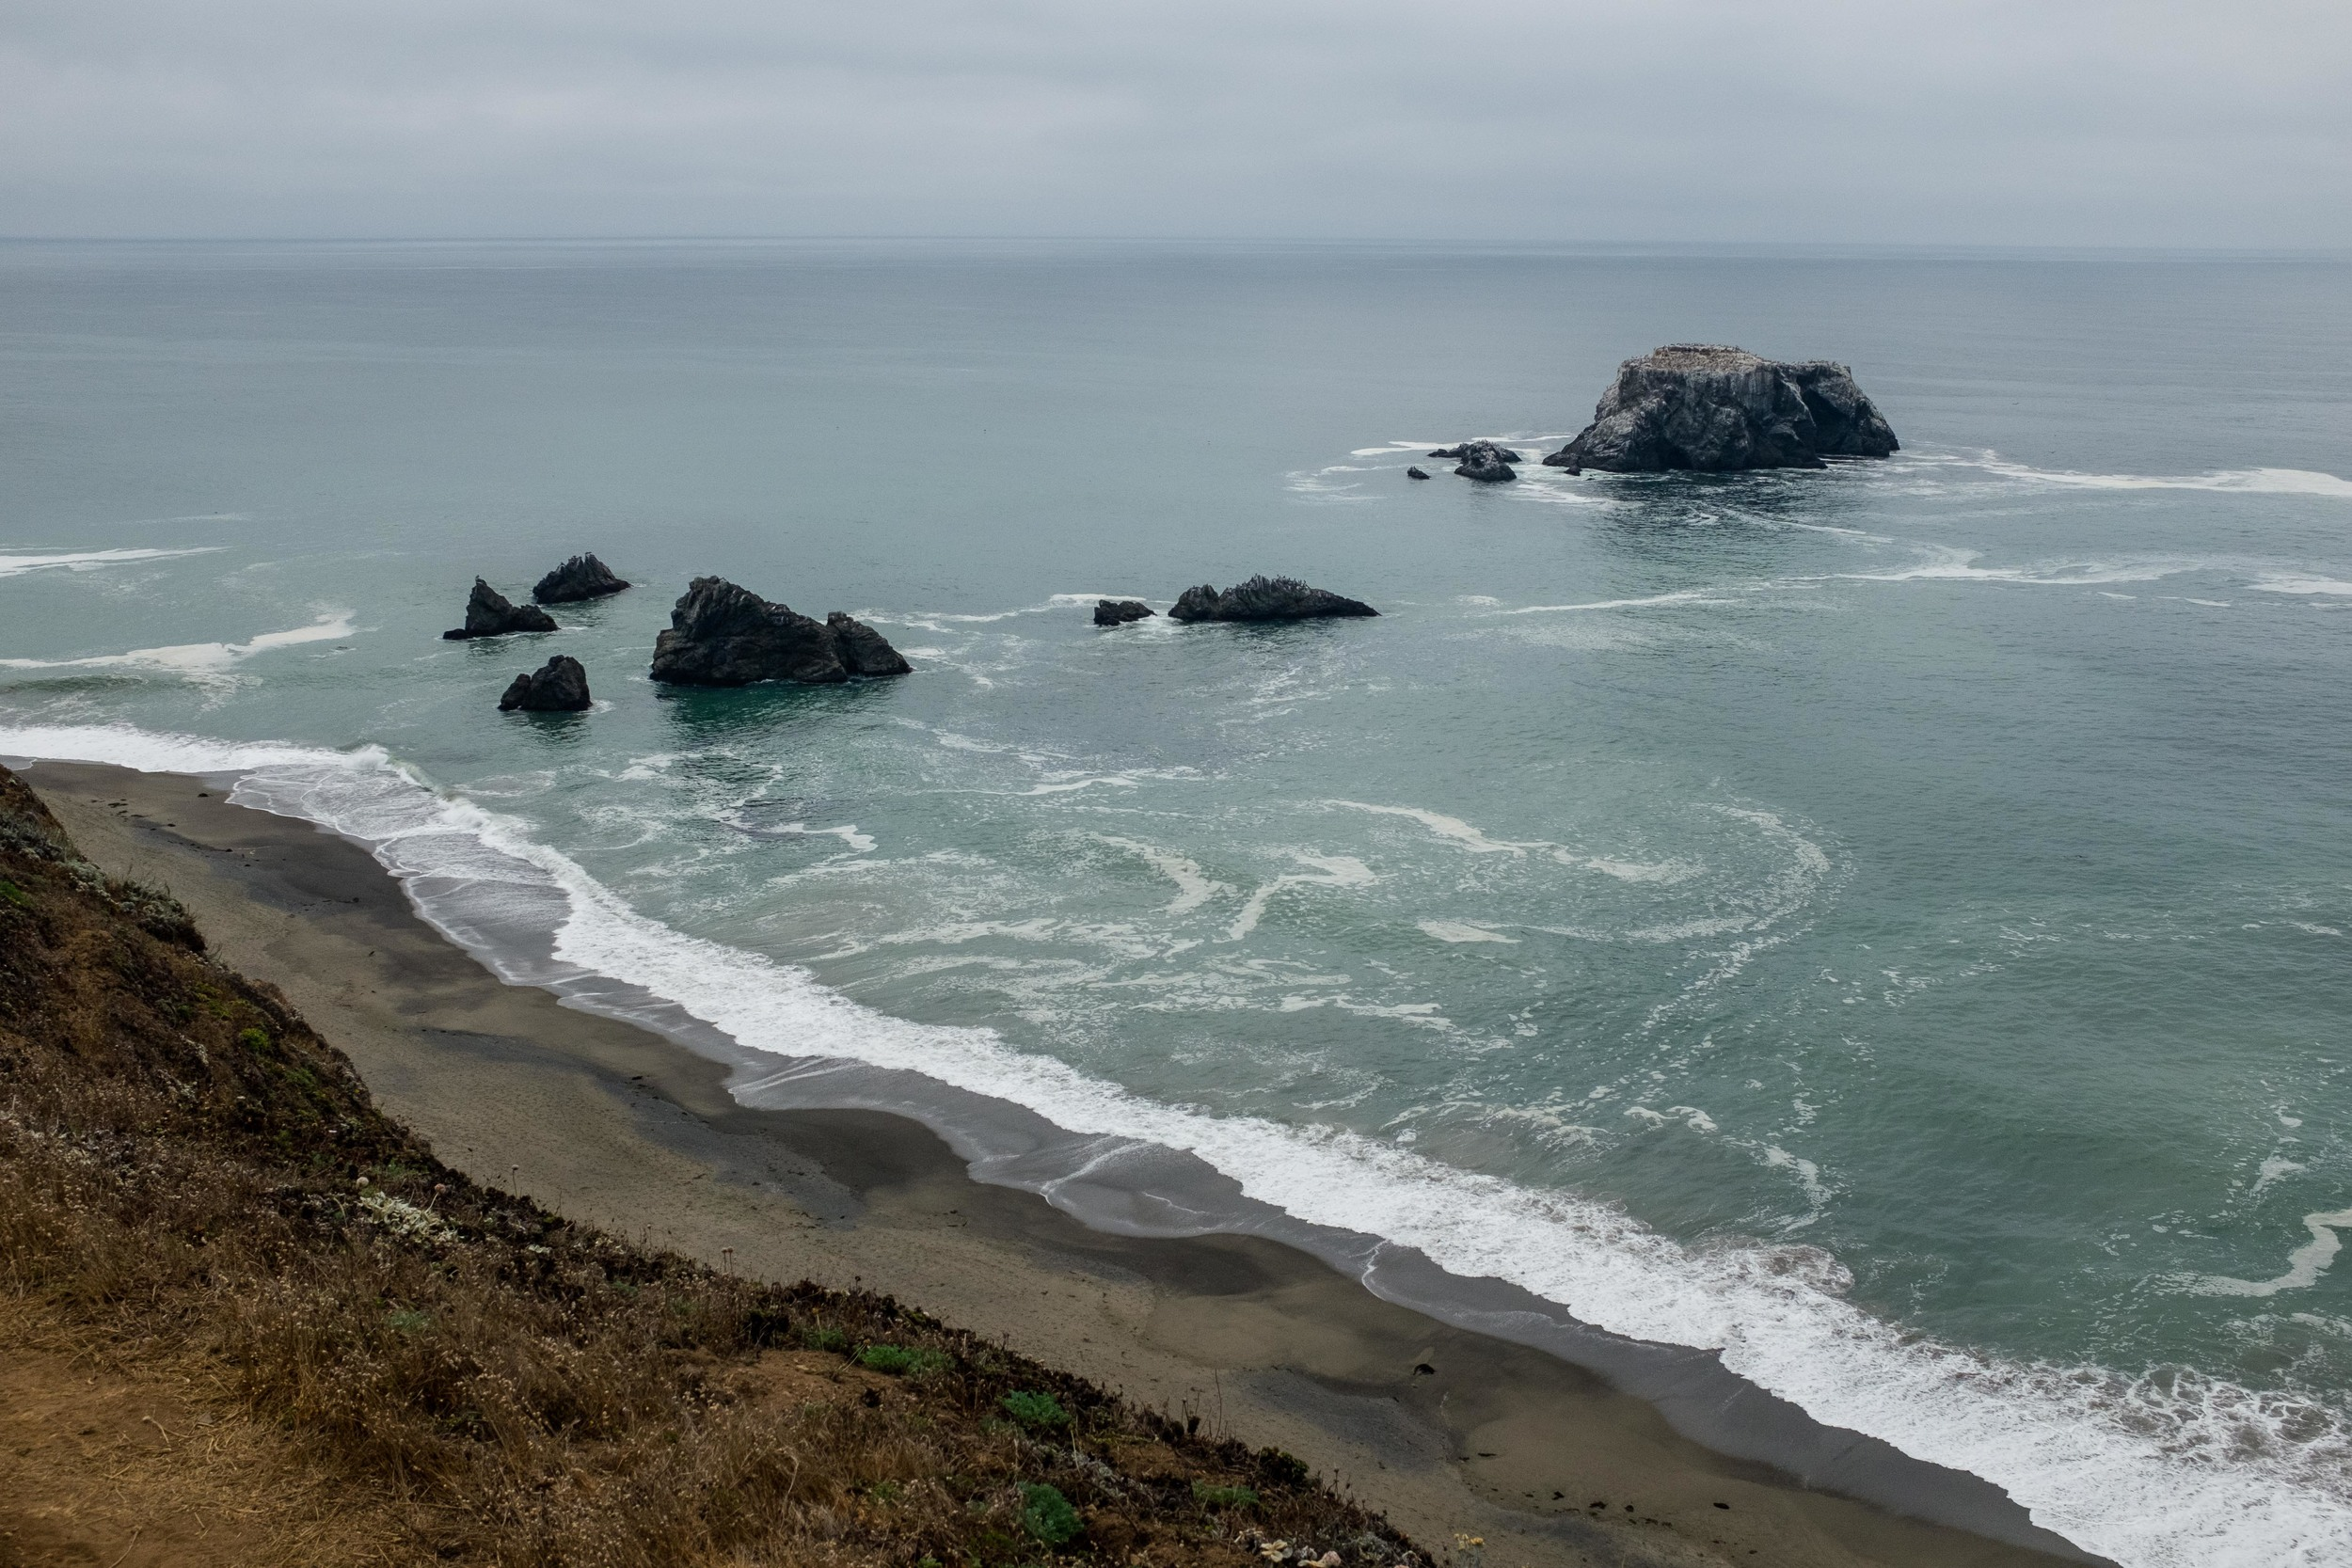 Blind Beach, Sonoma Coast State Park, California